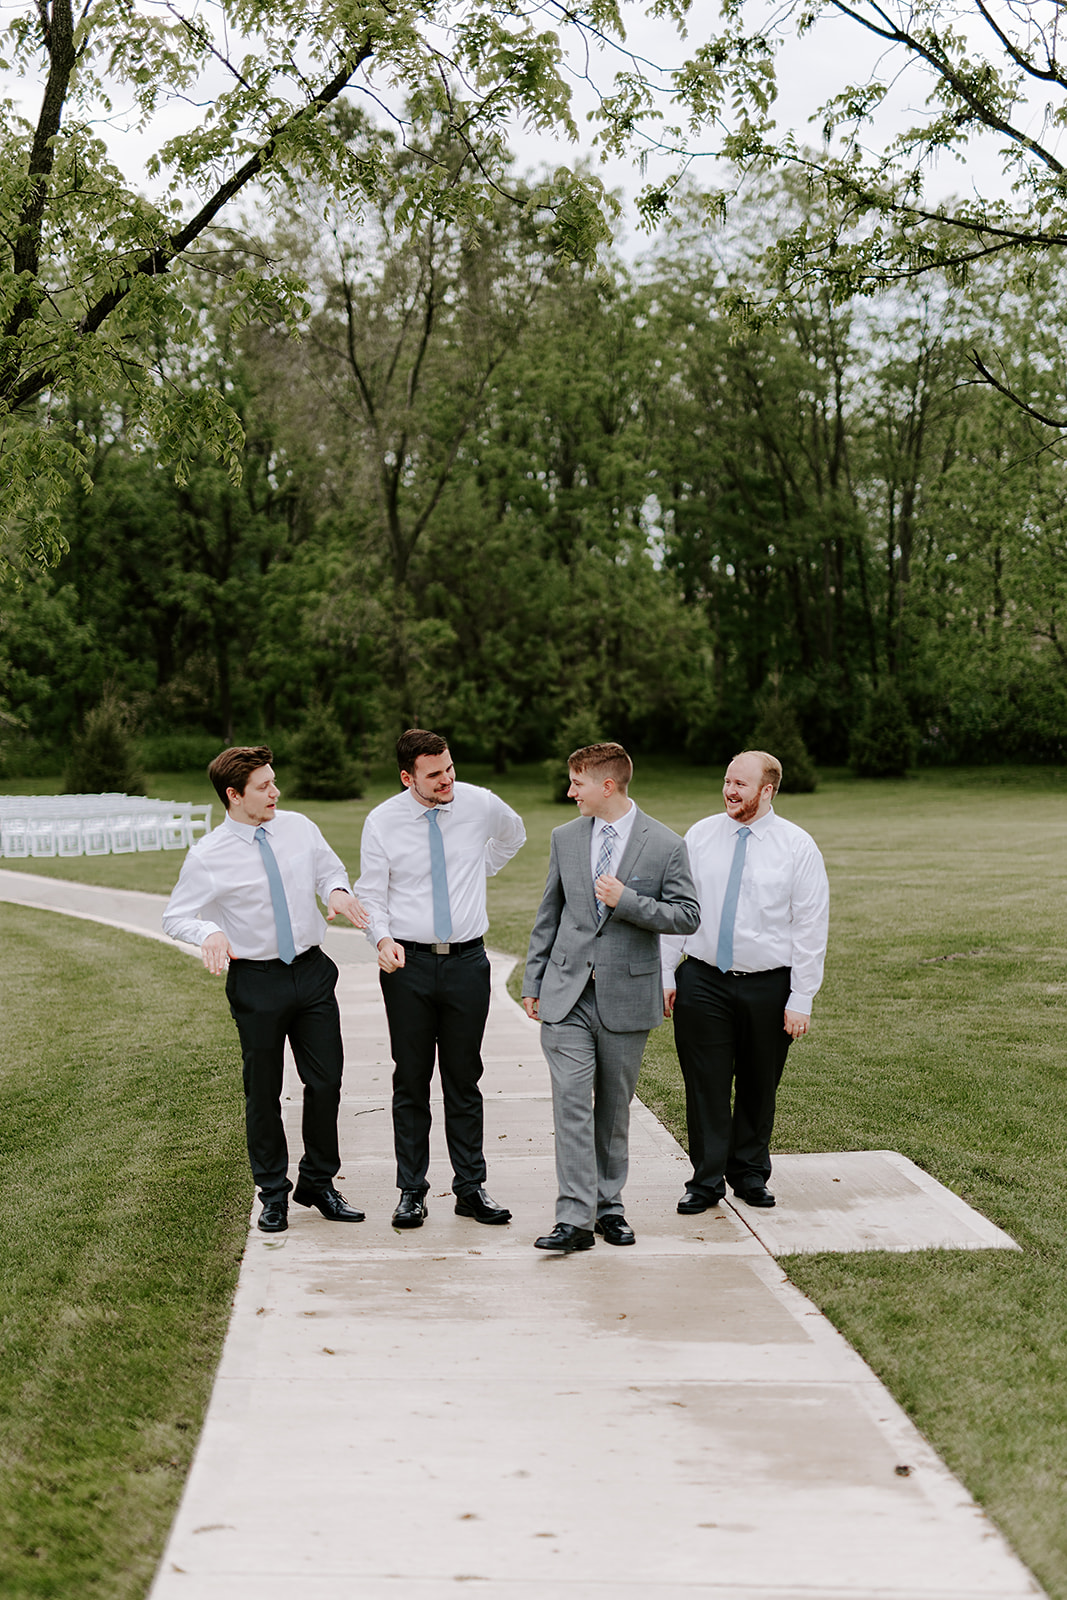 Kendra_and_Mattew_Indiana_Wedding_by_Emily_Wehner-351.jpg